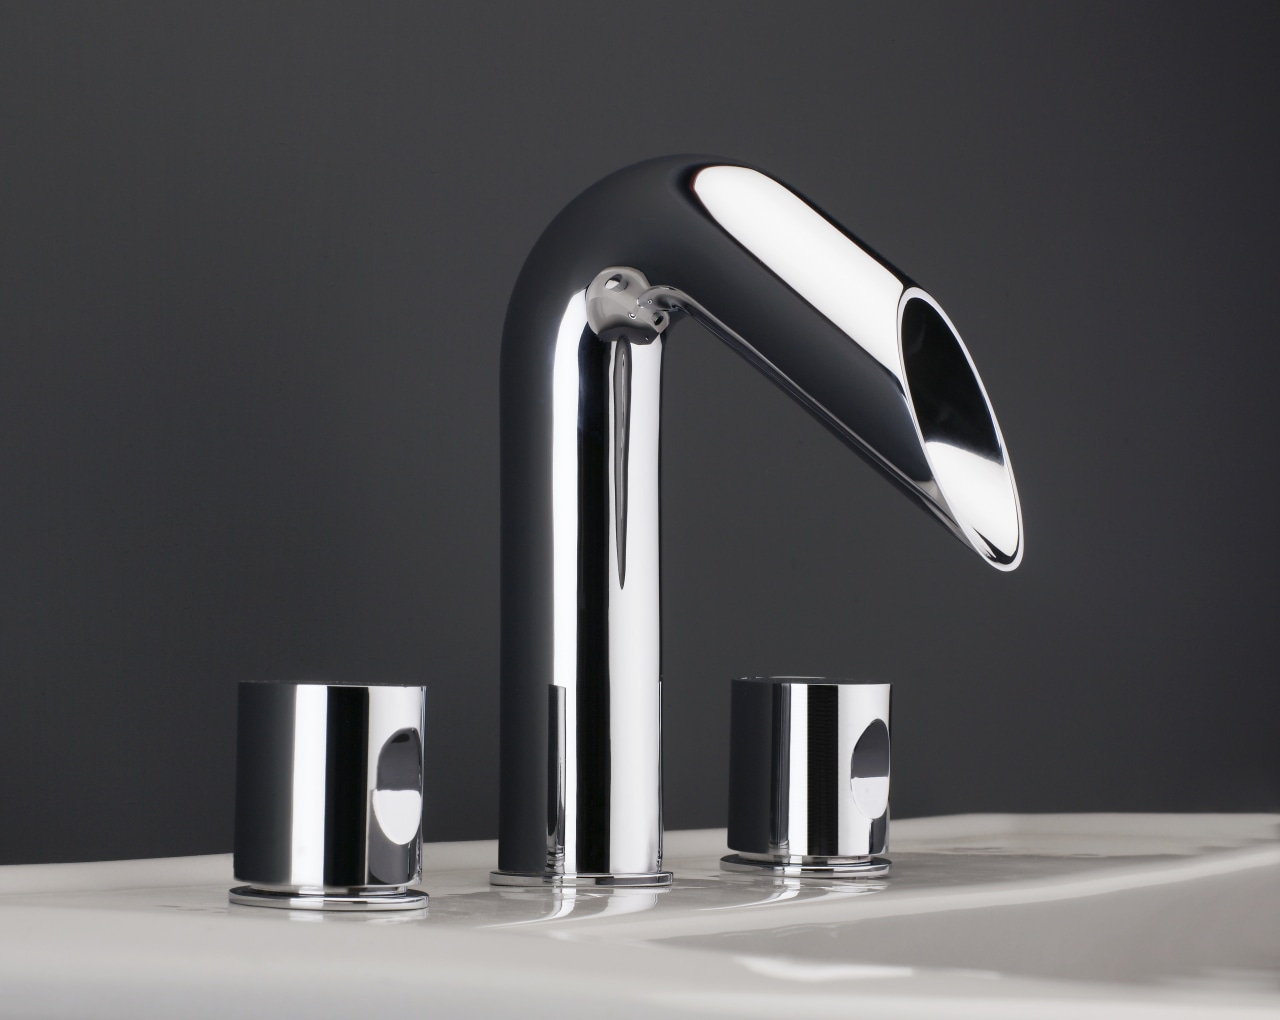 Sleek lines and highly polished chrome finish characterise light fixture, lighting, plumbing fixture, product, product design, tap, black